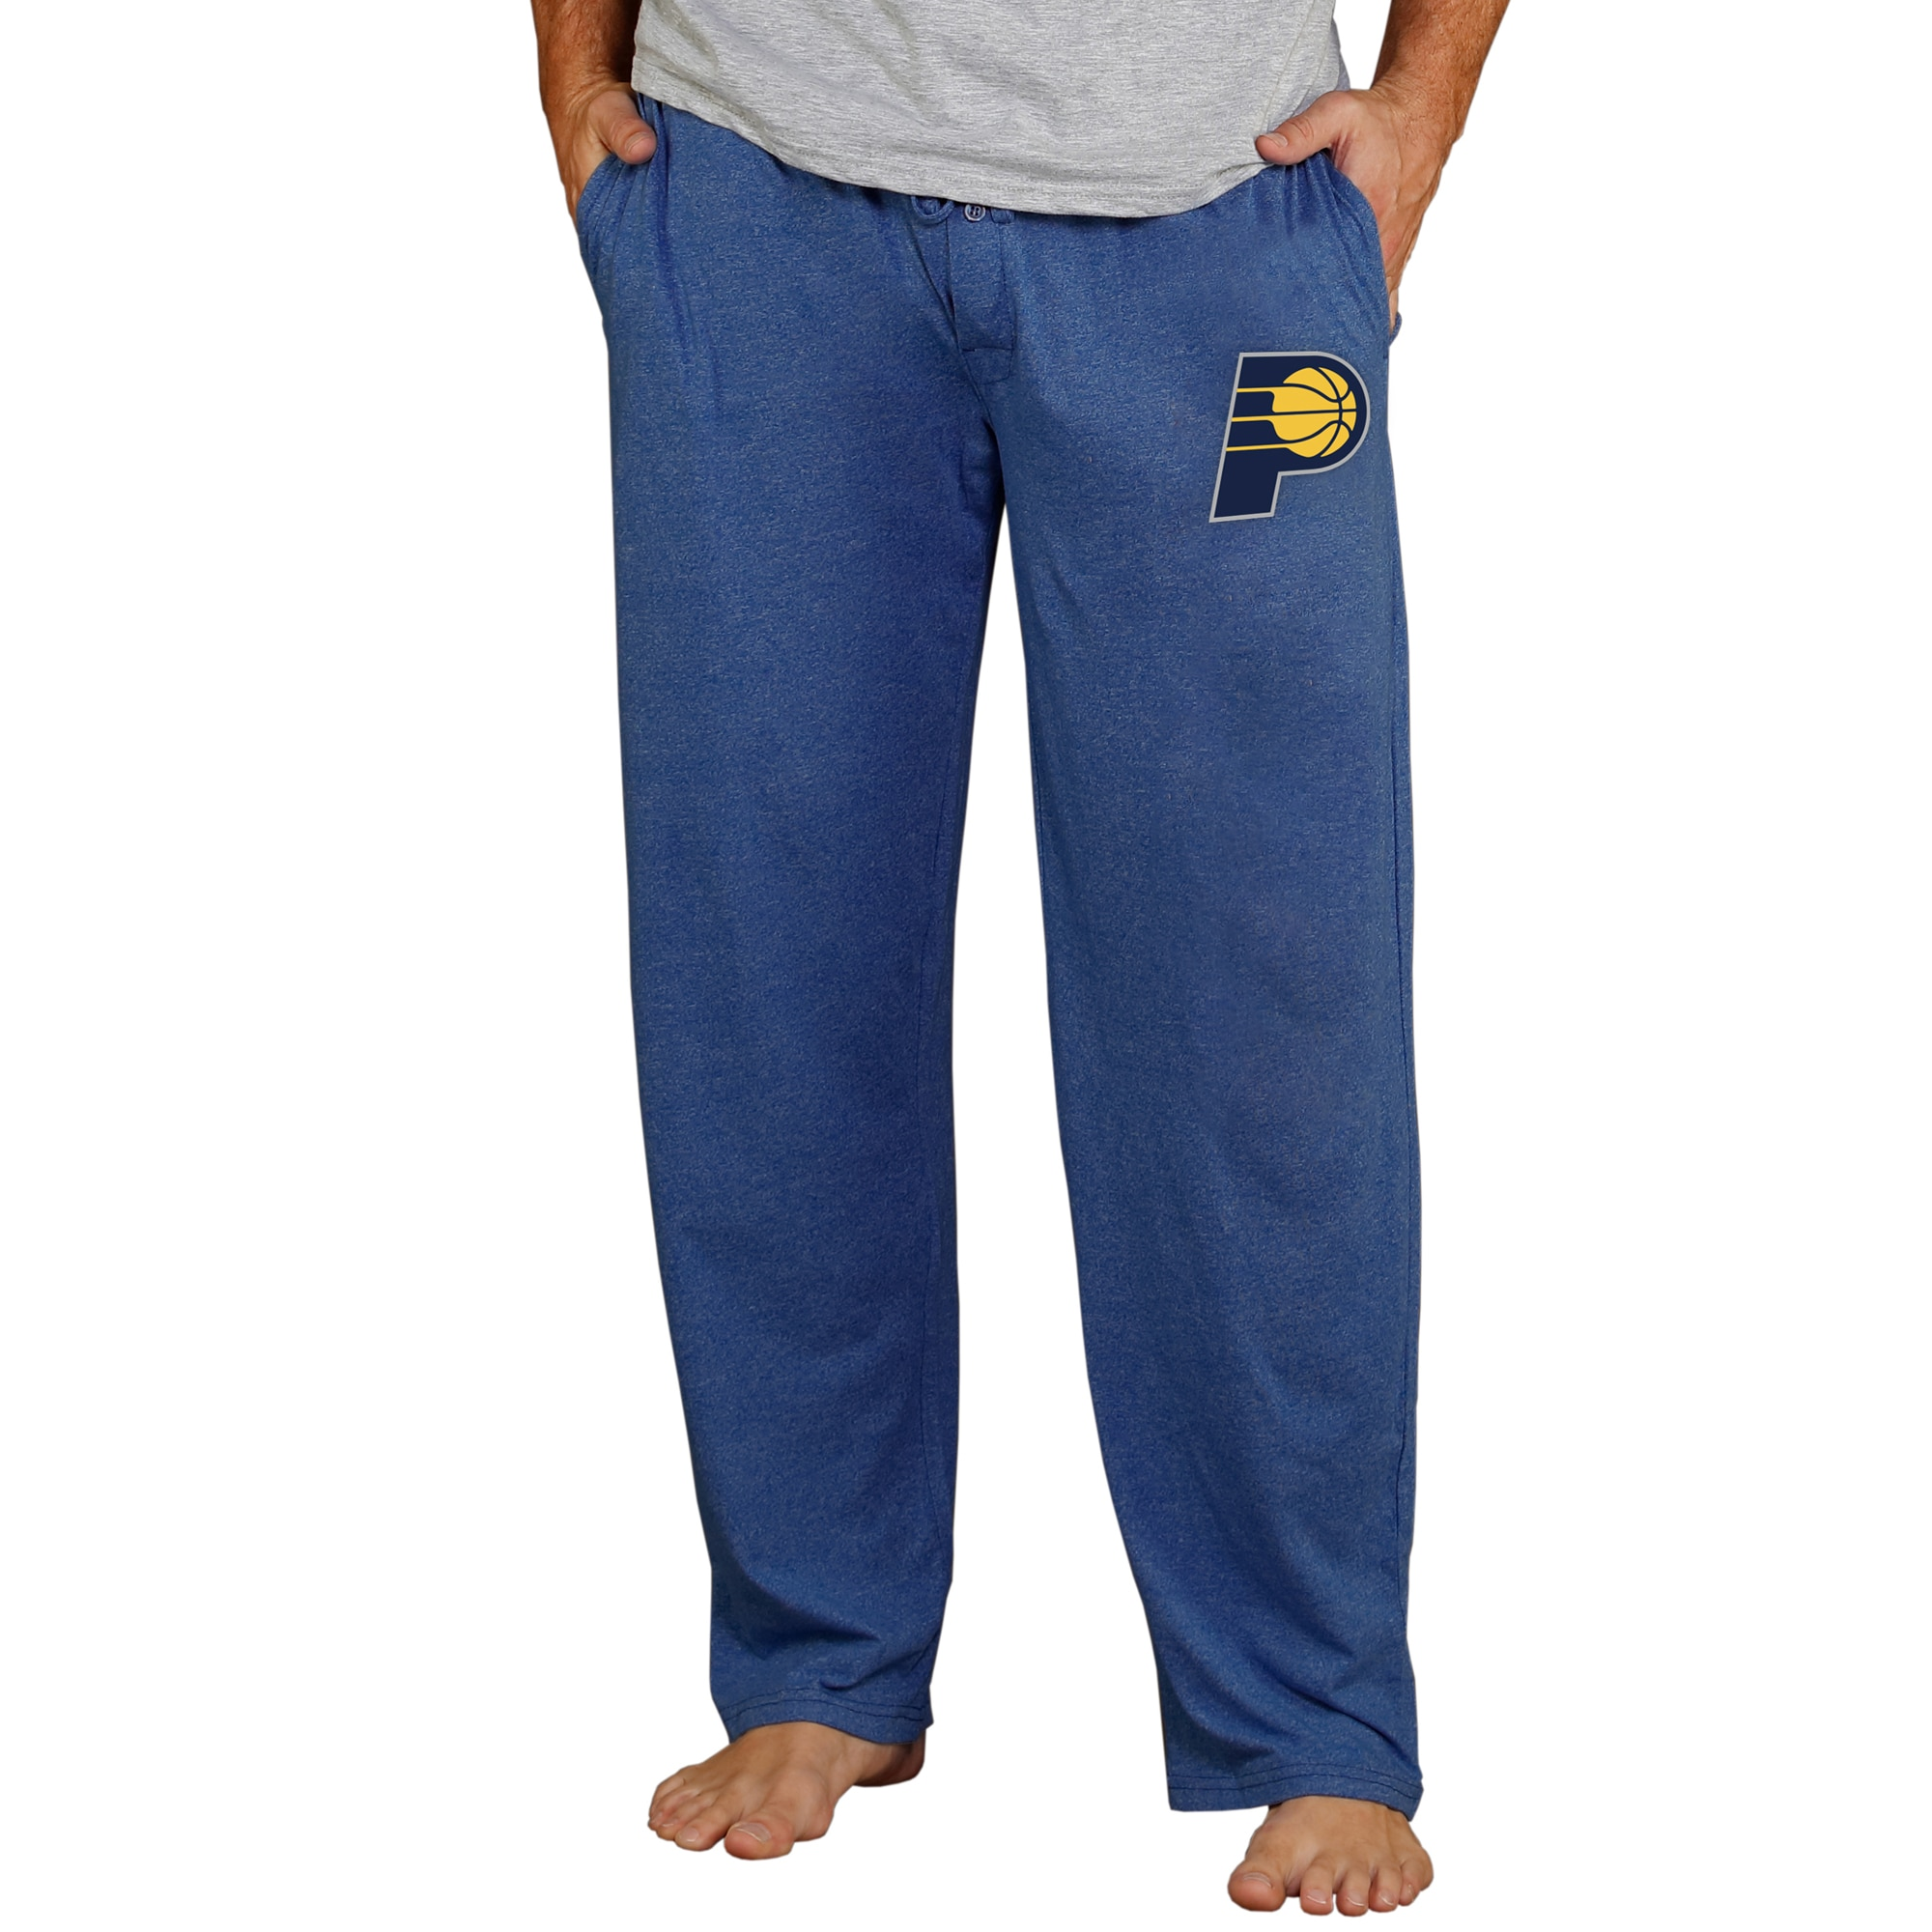 Indiana Pacers Concepts Sport Quest Knit Lounge Pants - Navy